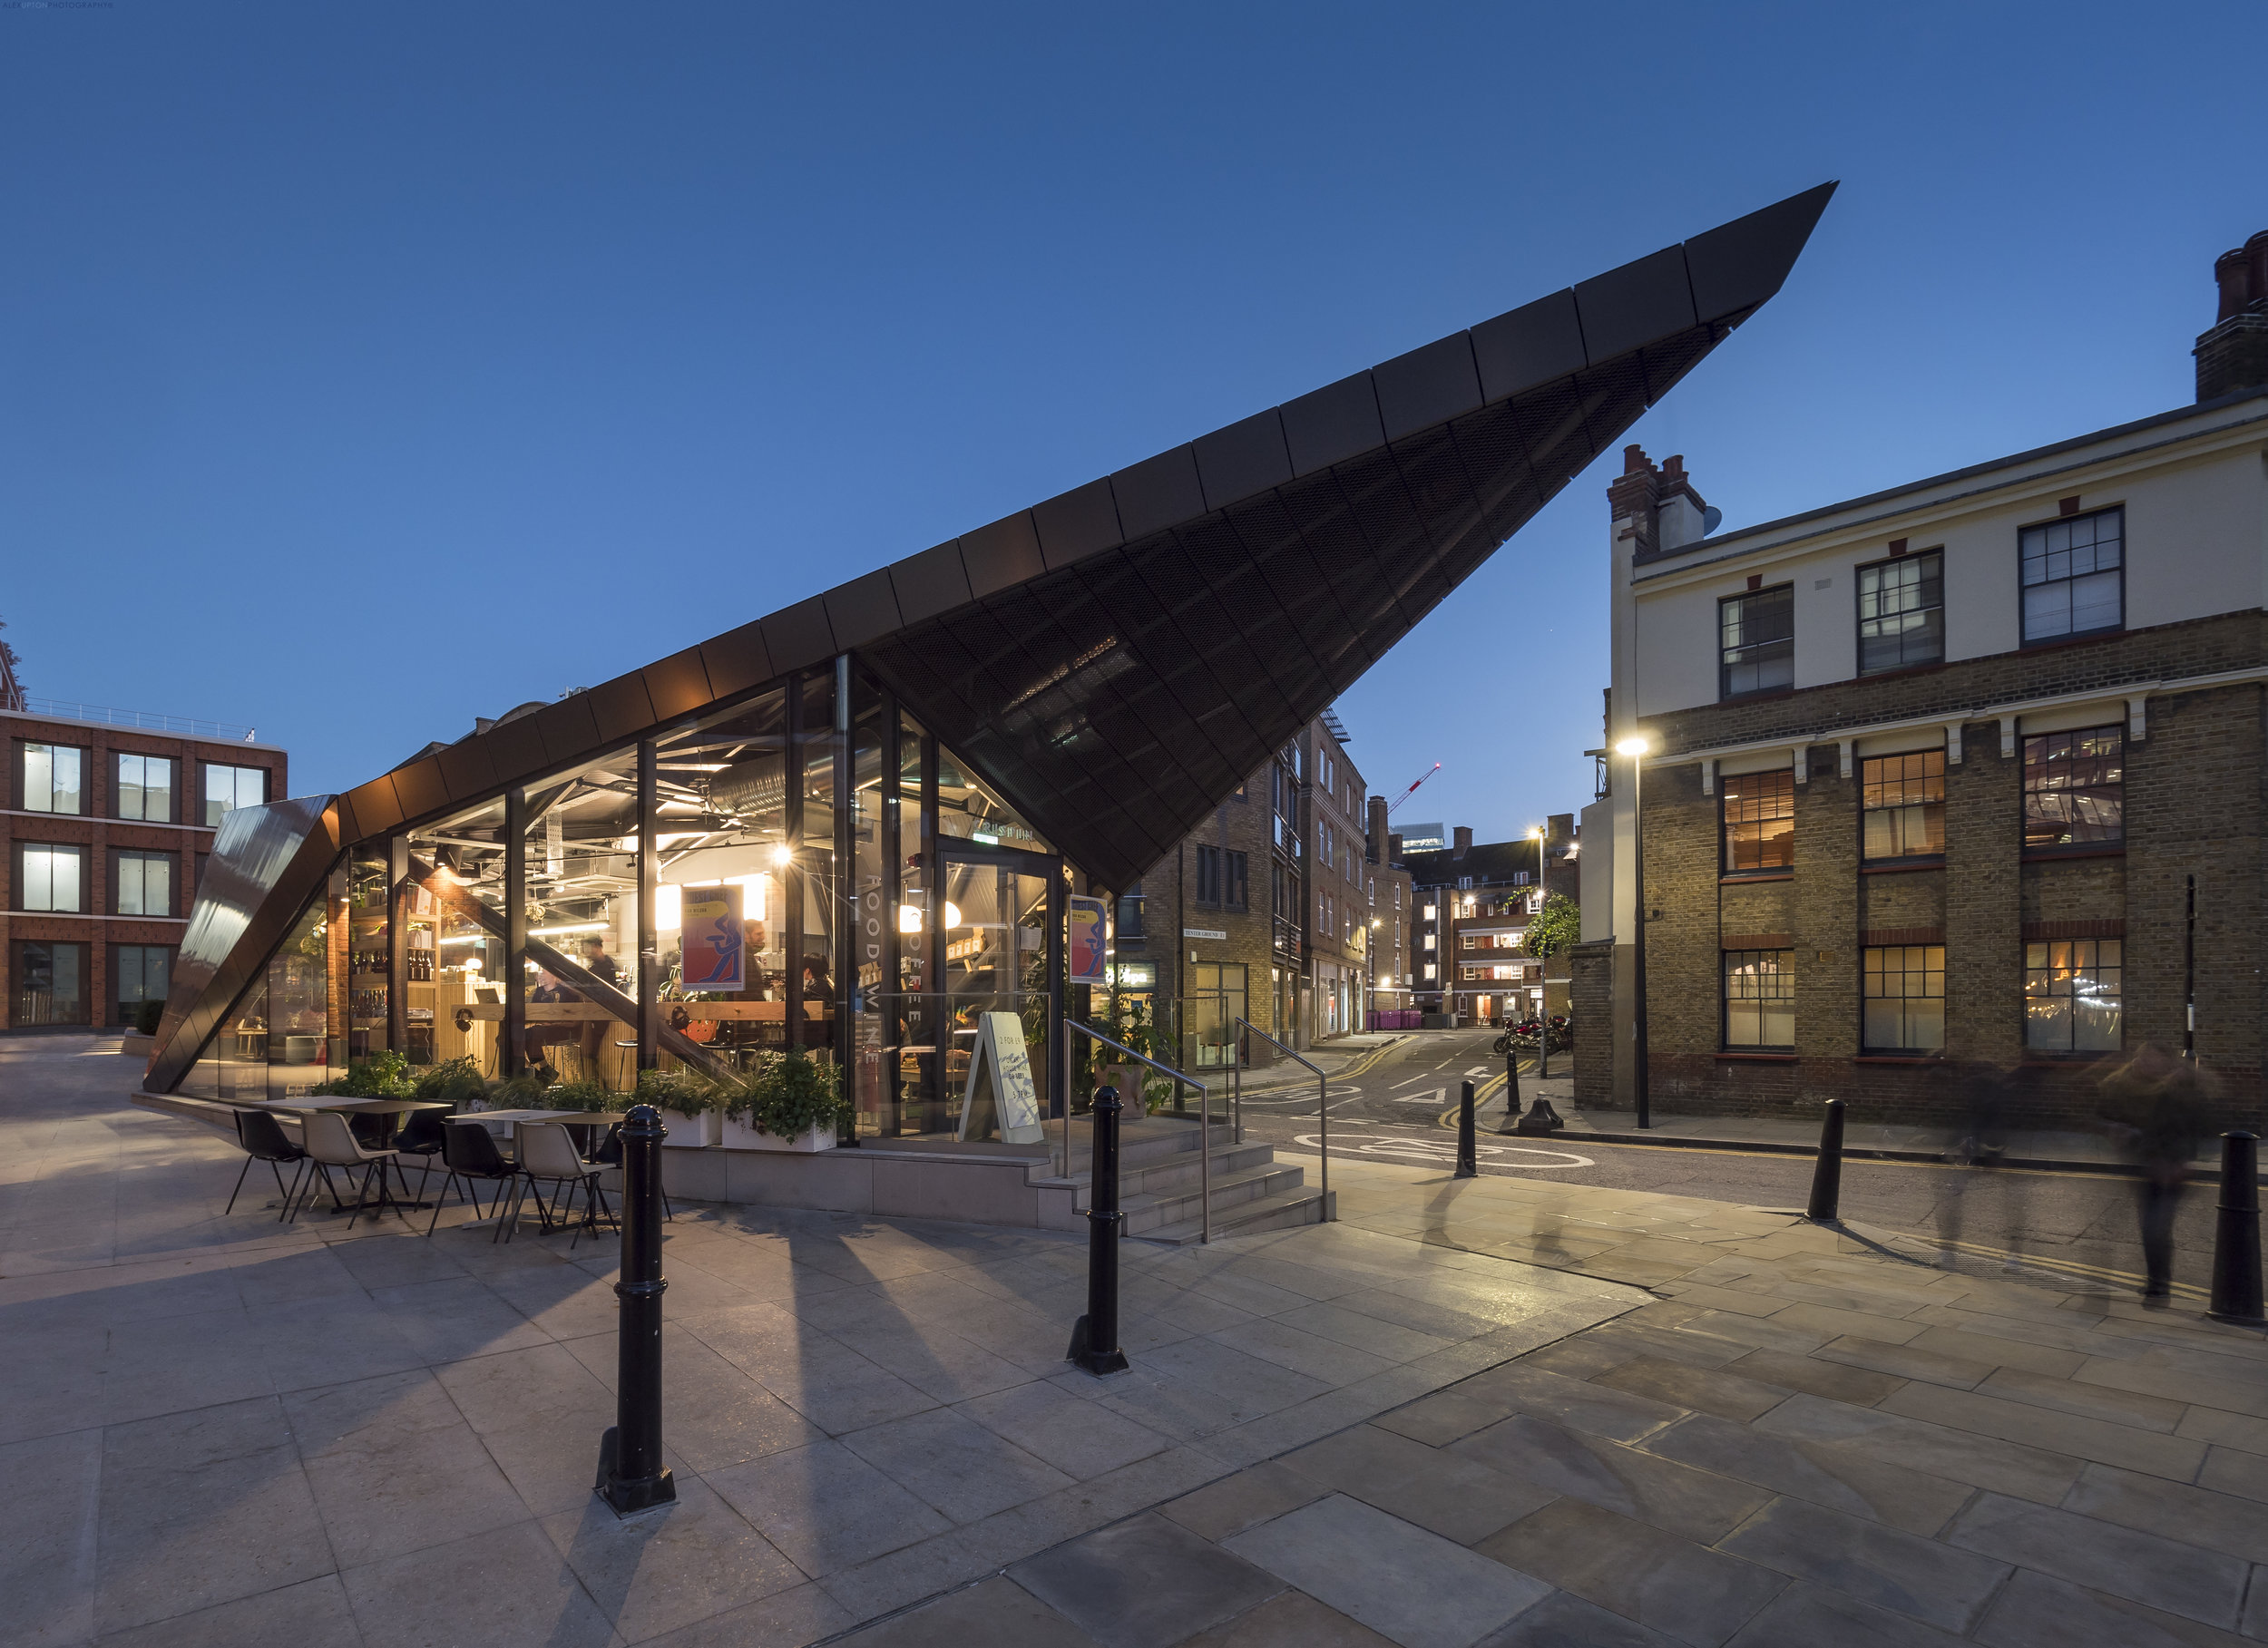 Architectural Photography of the Fruit & Wool Exchange Pavilion